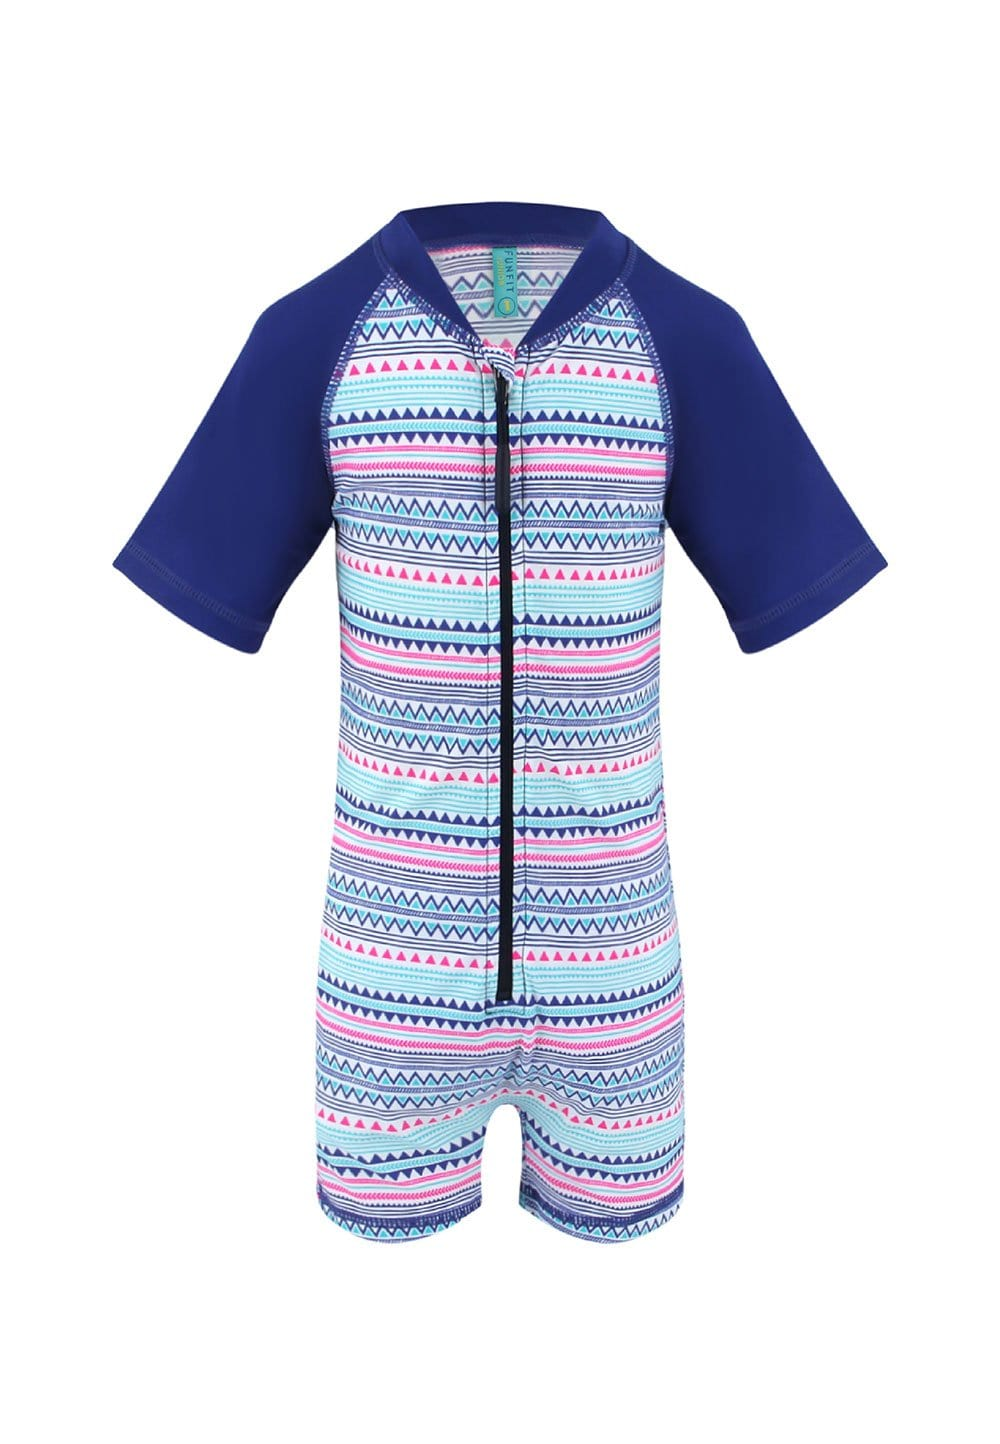 UPF50+ Junior Sunsuit (Unisex) in Day Starstruck Print